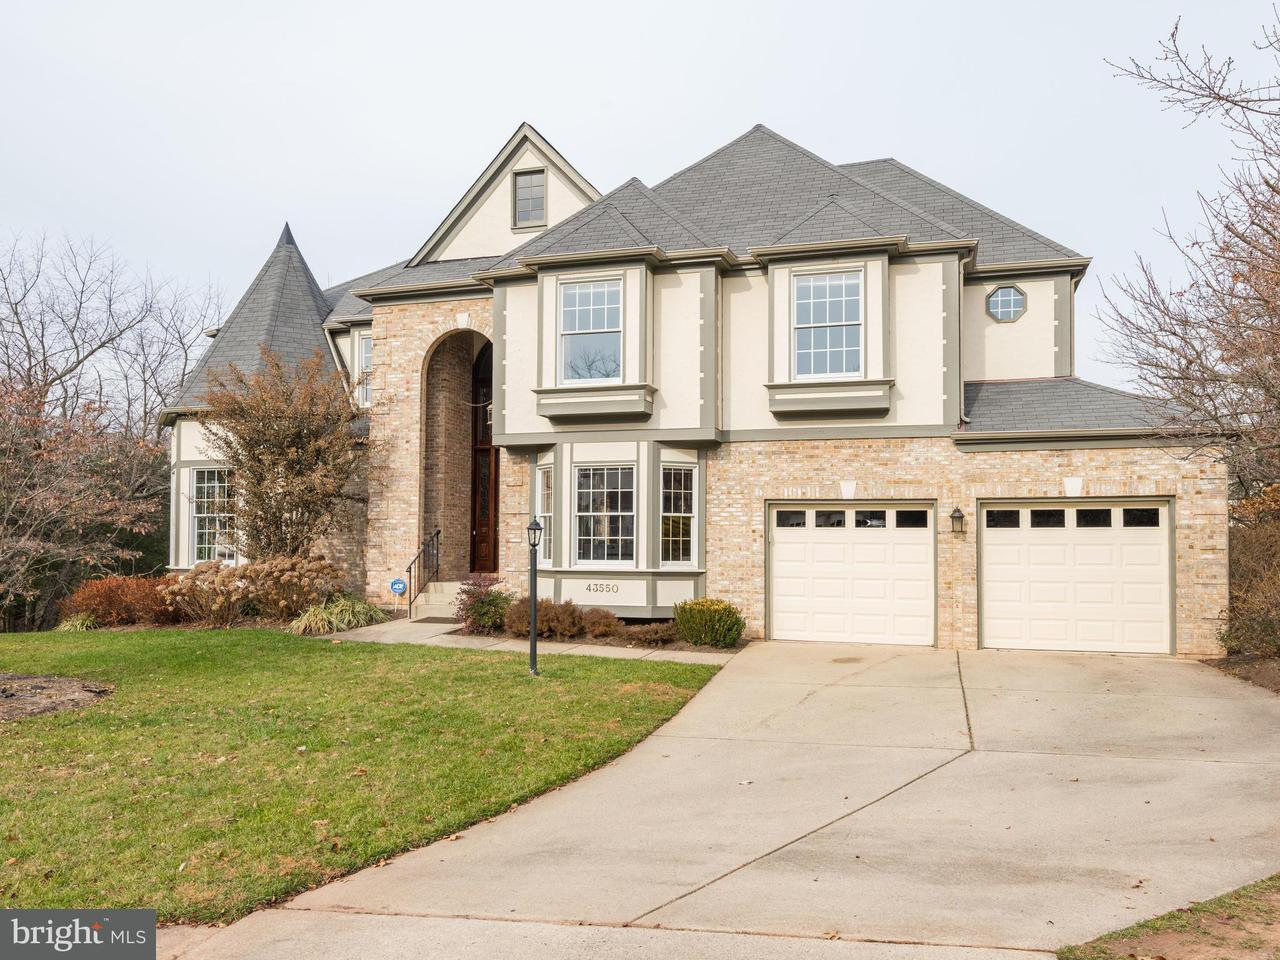 Single Family Home for Sale at 43550 COAL BED Court 43550 COAL BED Court Ashburn, Virginia 20147 United States